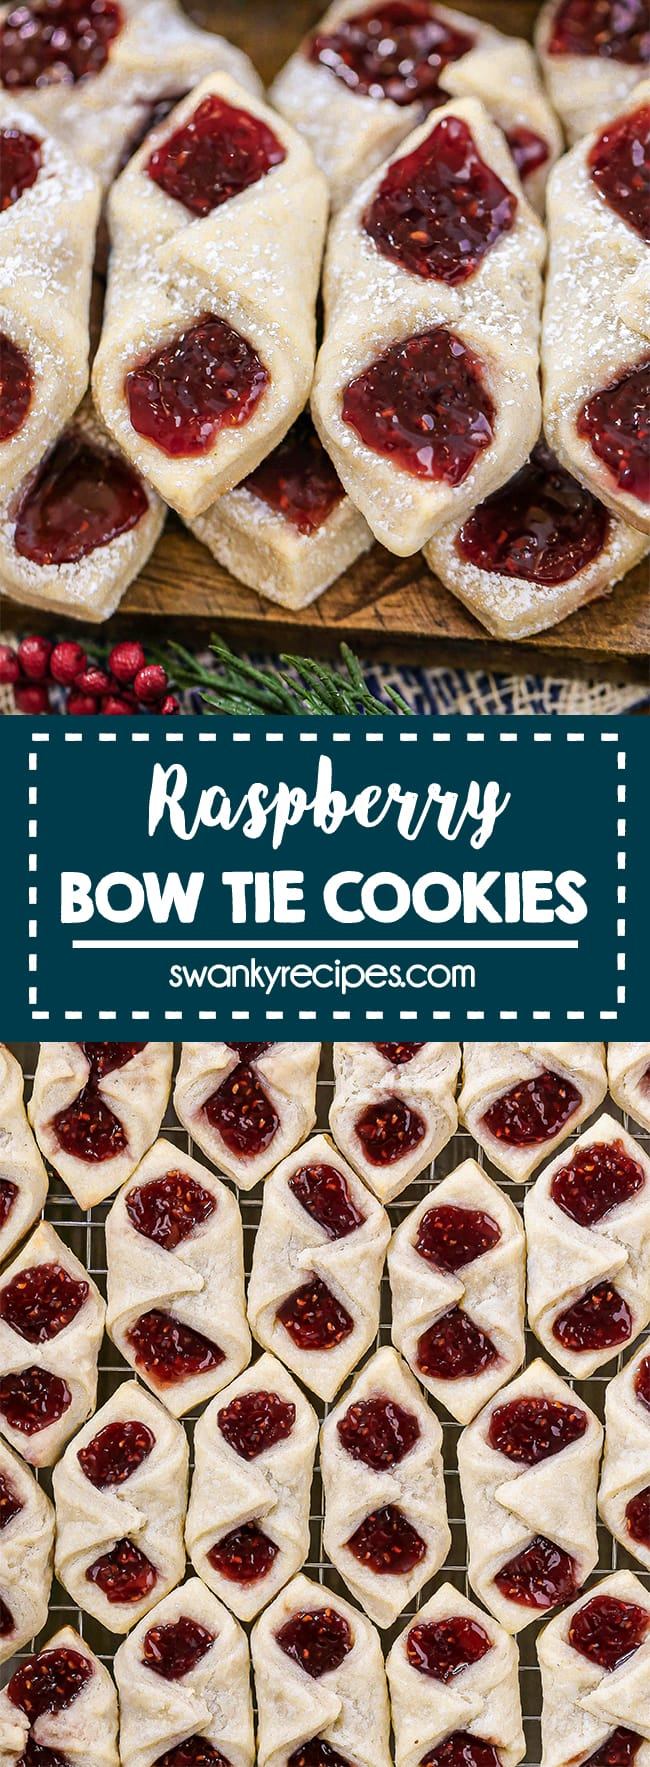 Raspberry Bow Tie Cookies - A horizontal wooden board fitted with 2 rows of bow tie cookies. Red raspberry fruit jam filled into each cavity with dough pinched in the center. Served on a wooden board with blue and white burlap, fake green christmas tree branch and fake cranberries. Text in center reads Raspberry Bow Tie Cookies in blue boarder. Second image is an overhead view of the bow tie cookies on a cooling rack in row after row.